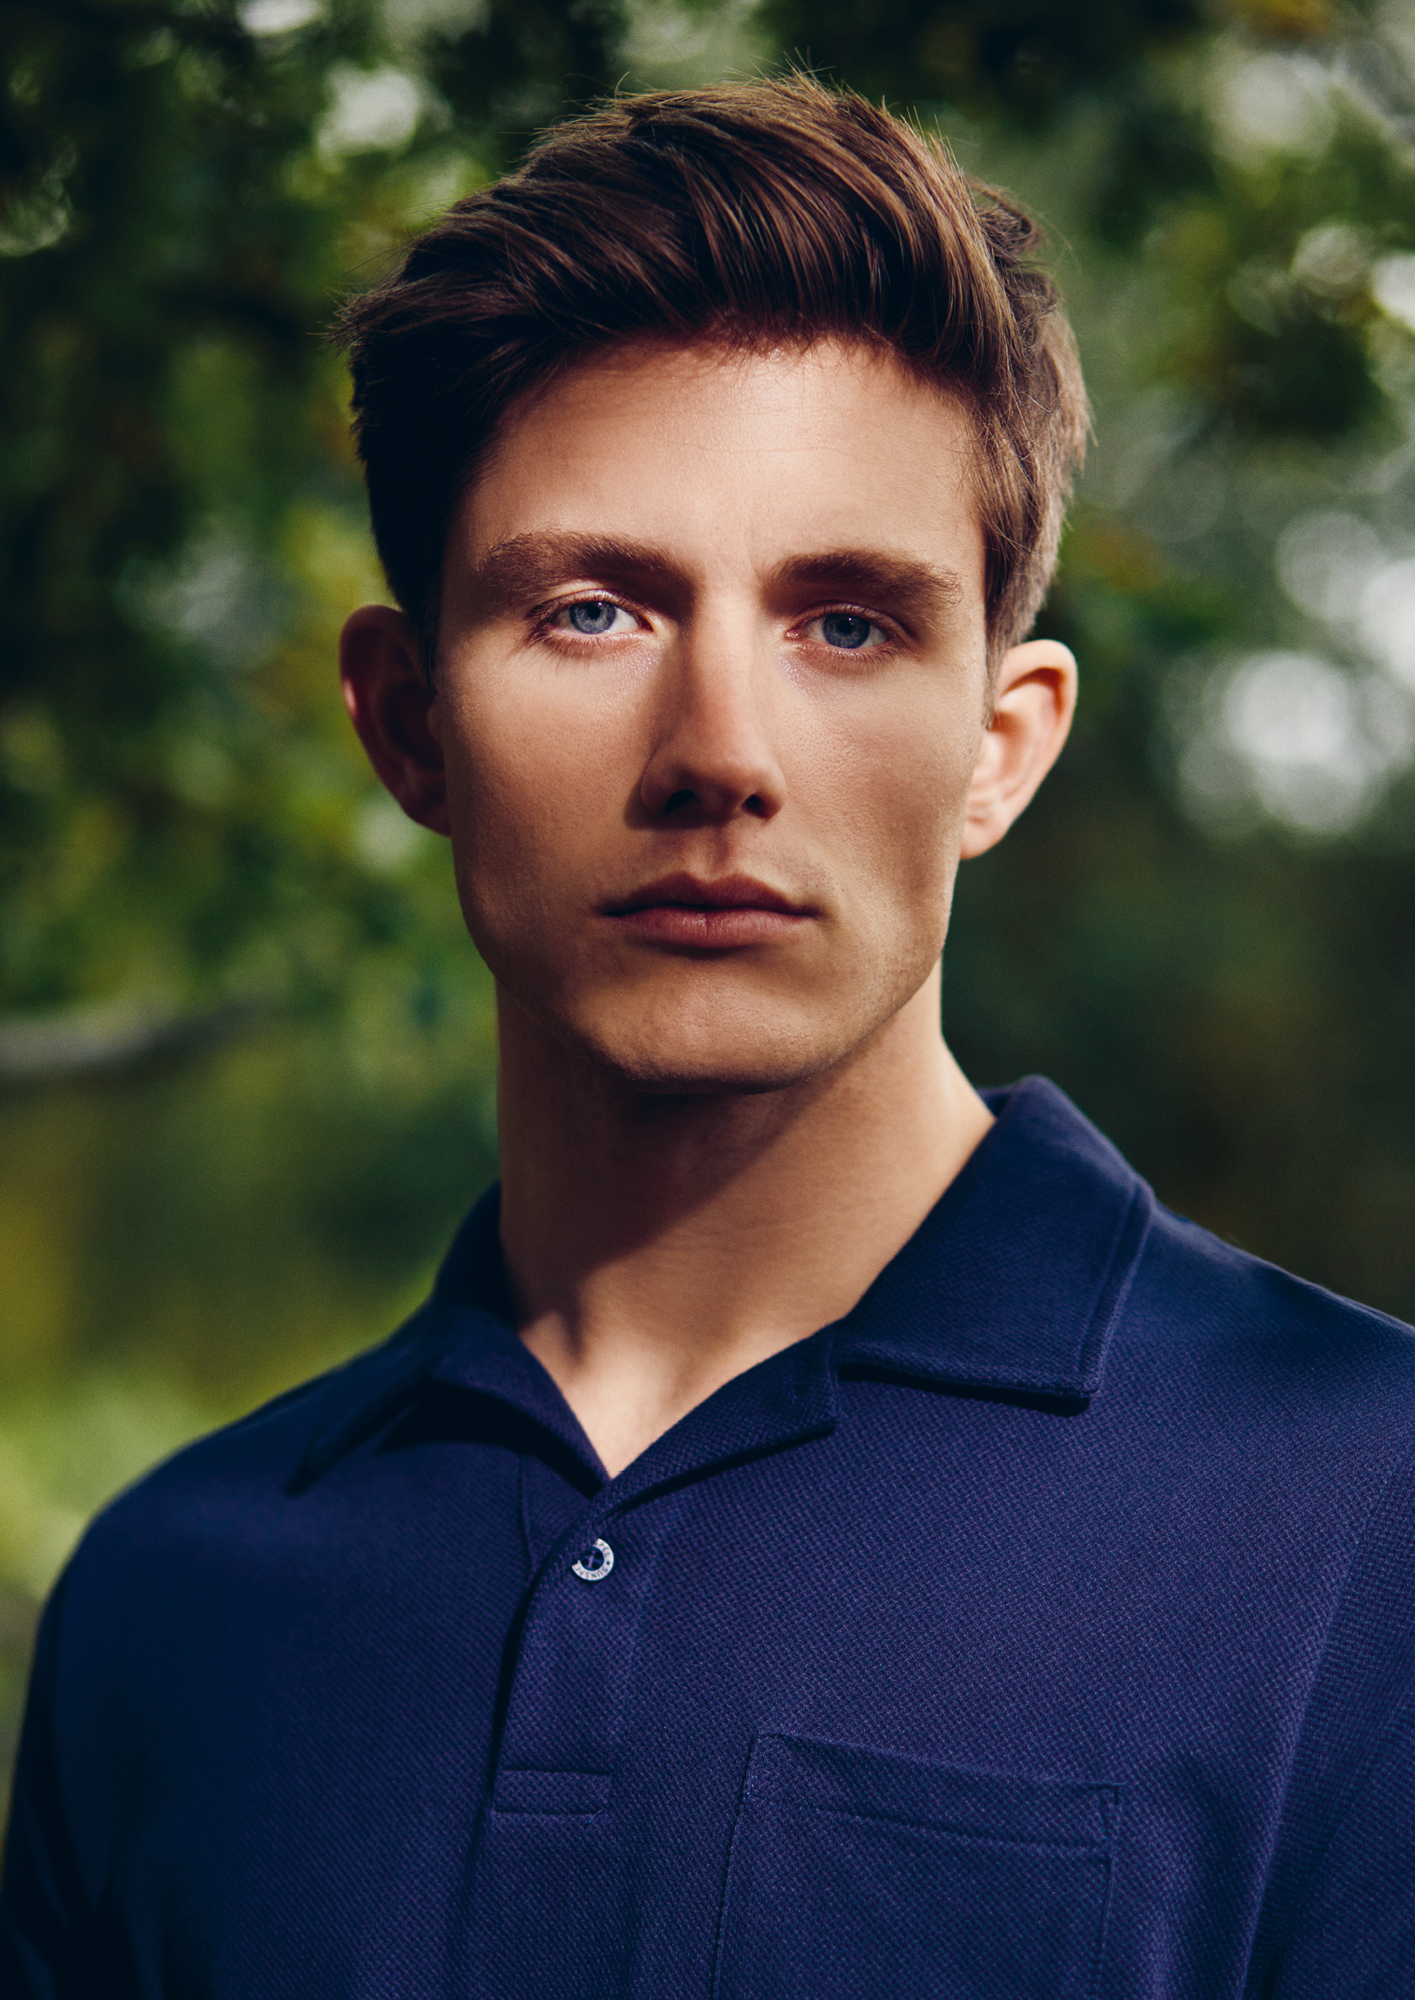 Lightweight and cool, the Sunspel Riviera polo shirt is a summer classic